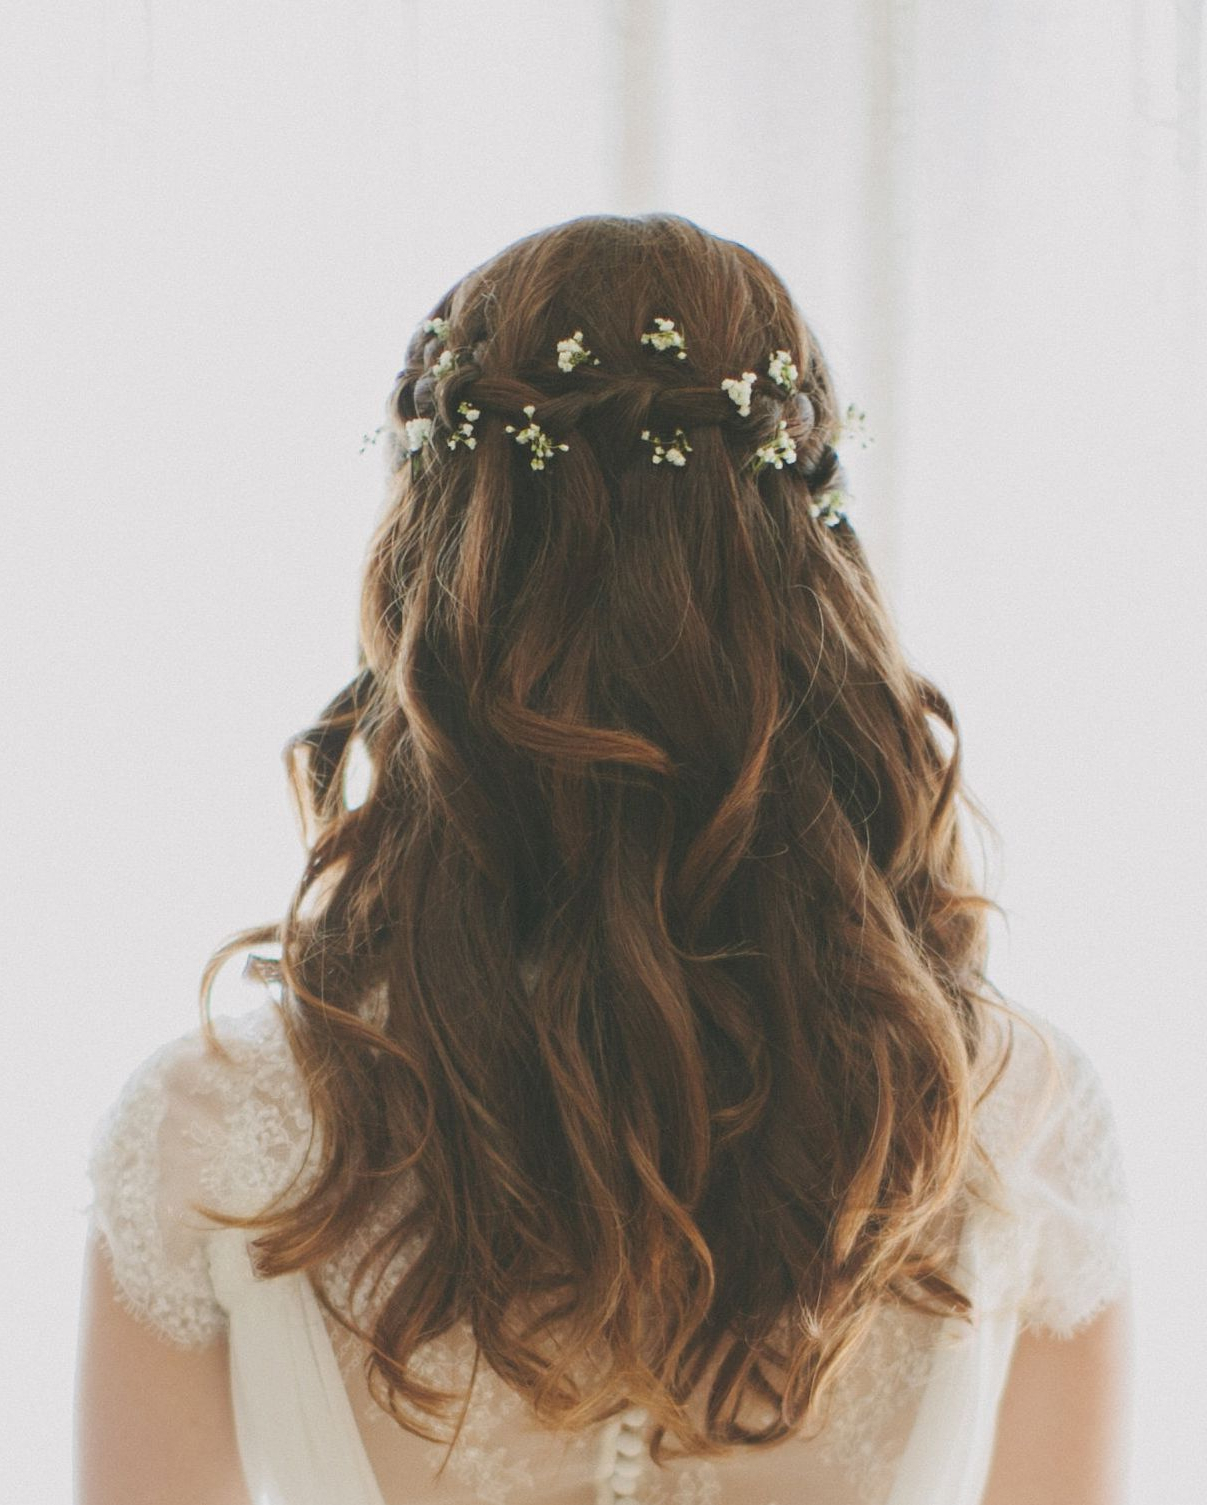 Well Known Braided Wedding Hairstyles With Subtle Waves With Waterfall Braid Wedding Hair With Baby's Breath (Gallery 5 of 20)